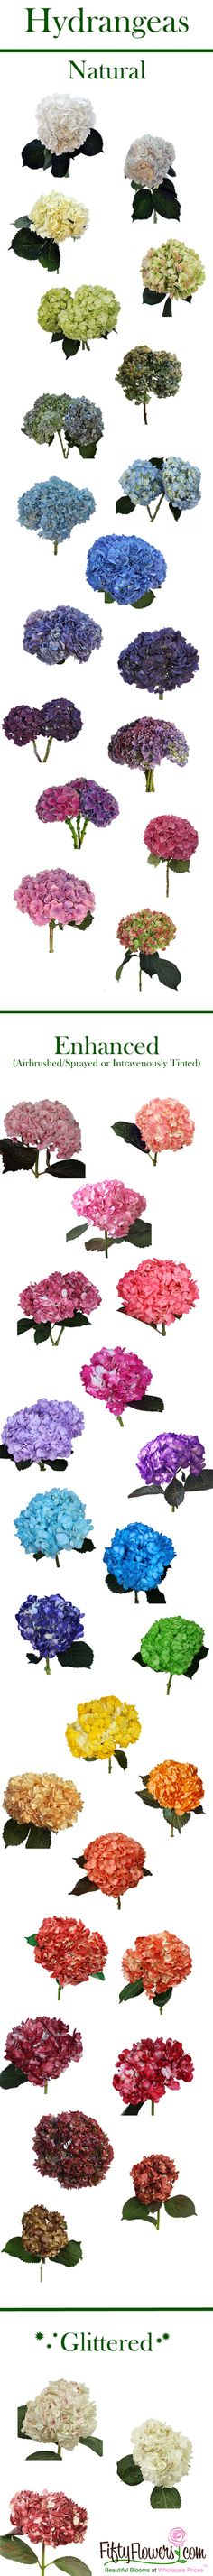 FiftyFlowers.com has Hydrangeas in Every Color! Choose from Natural True Blues, Airbrushed Hot Pinks and even Glittered Hydrangeas, perfect for adding a bit of sparkle to your arrangements!